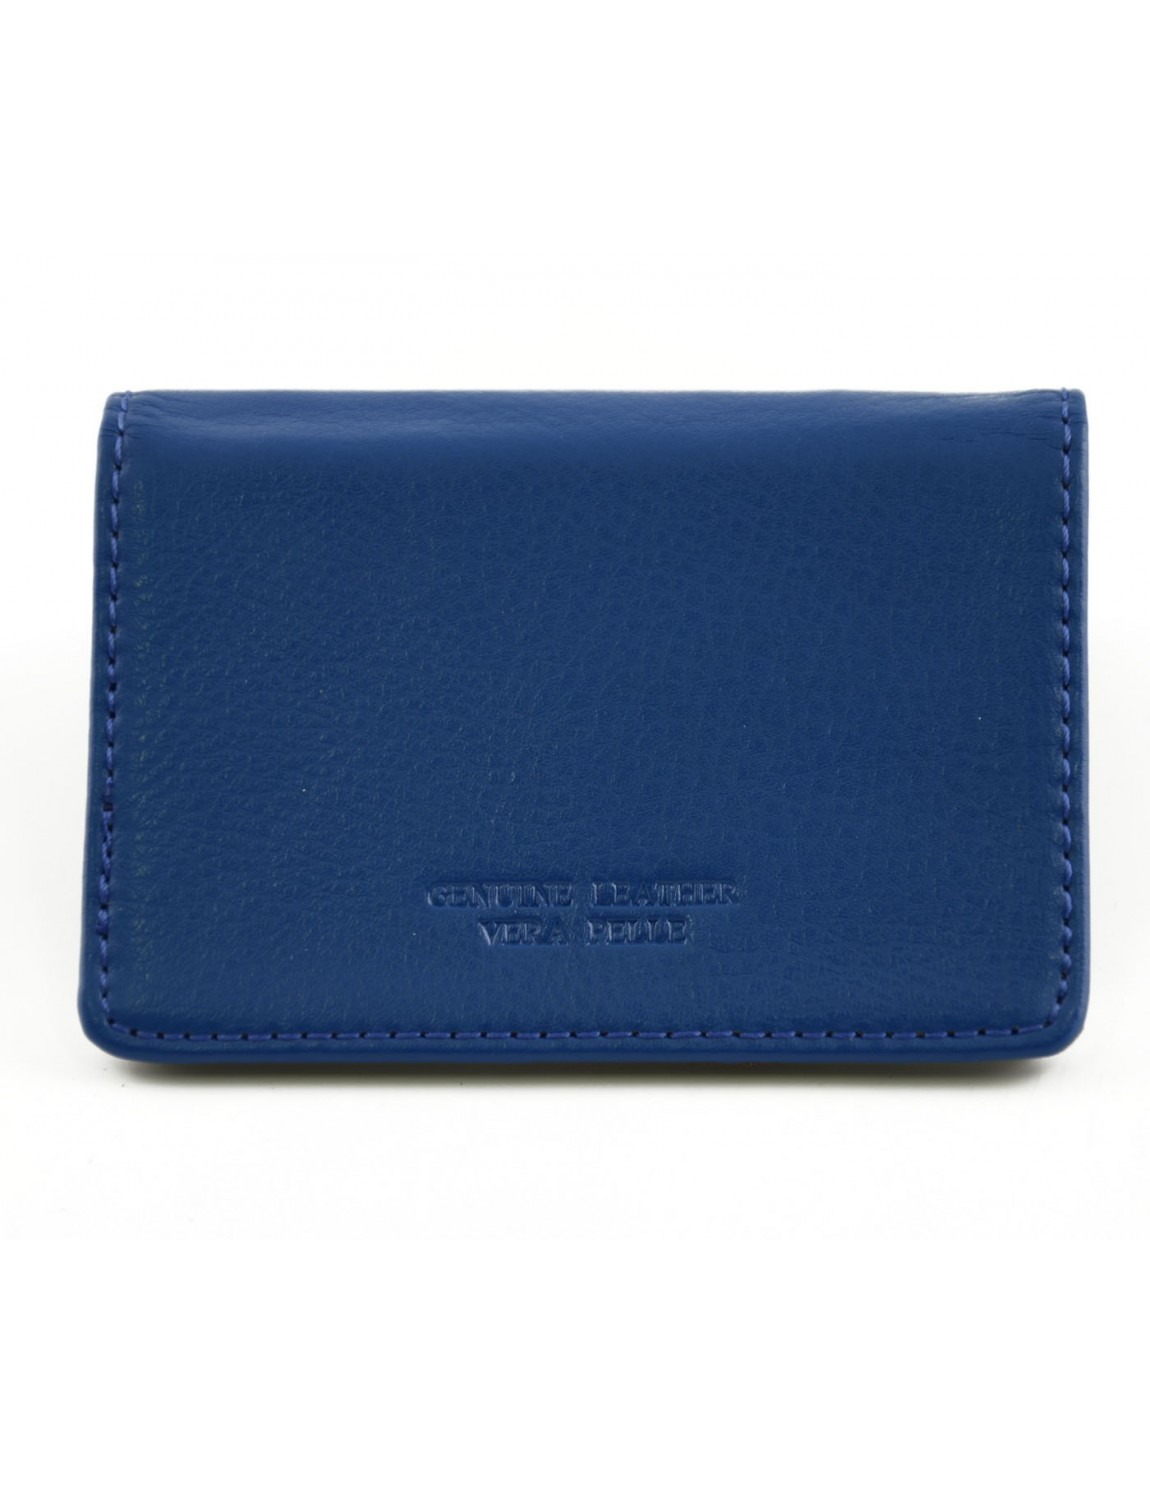 Blue Leather Business Card Holder | Best Business Cards